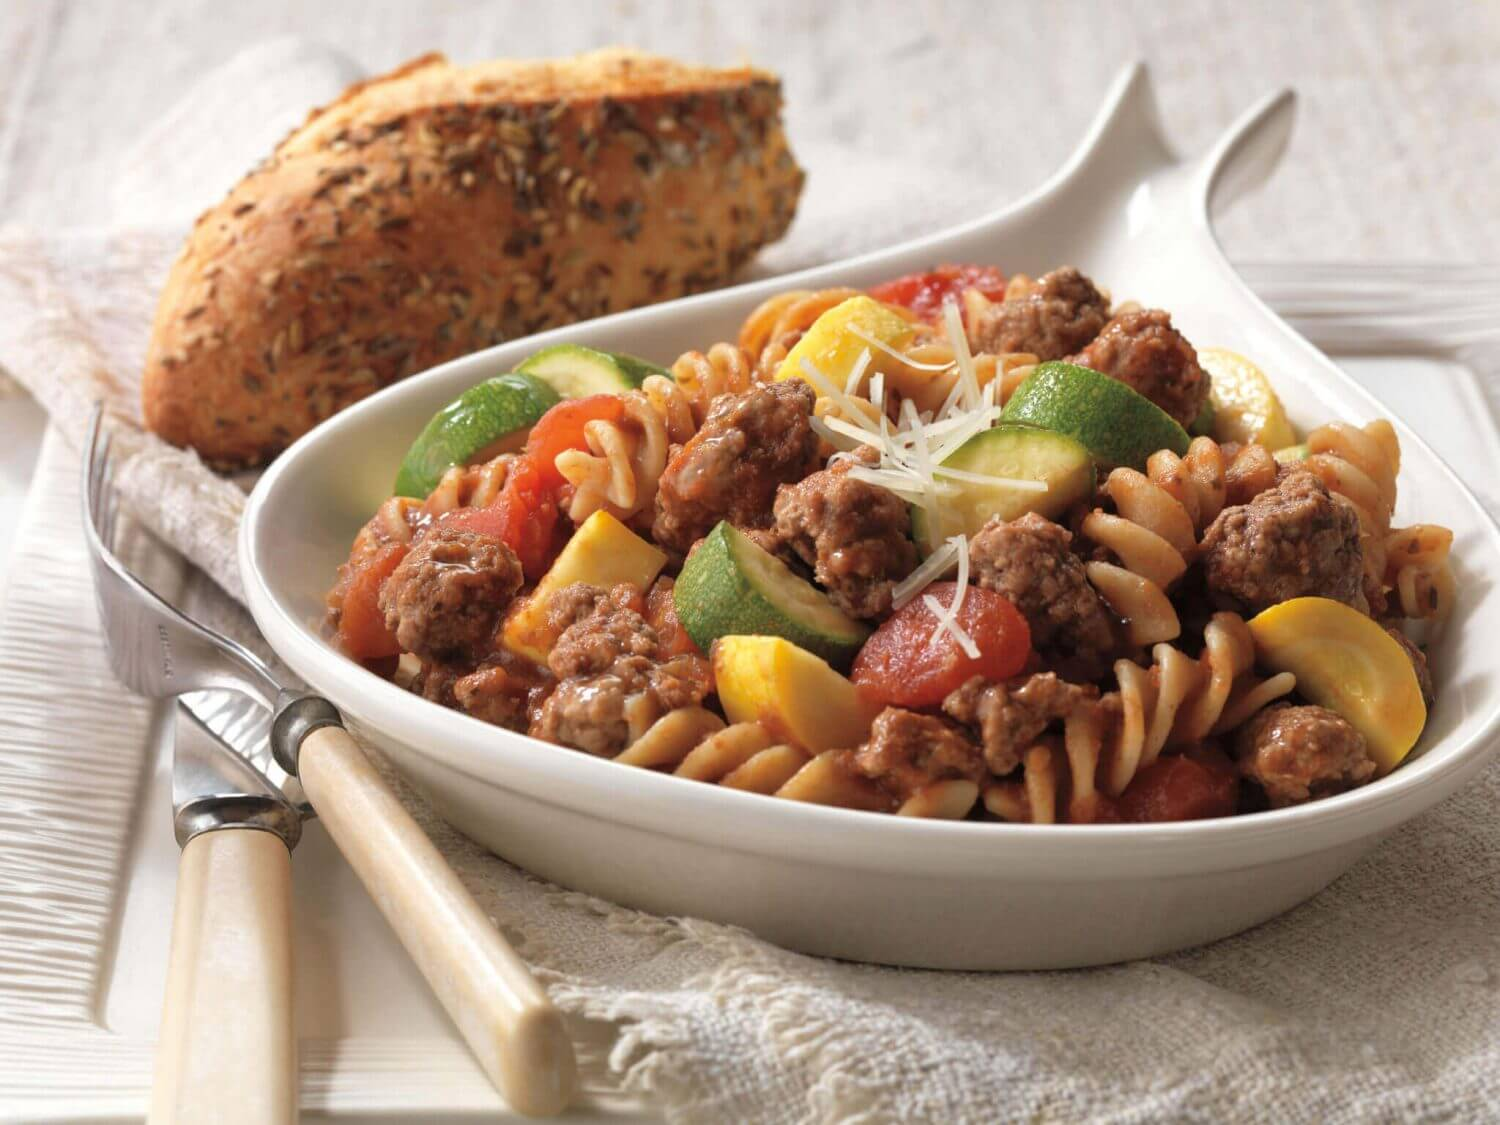 Make Beef and Pasta Skillet Primavera for a nutritious meal that the entire family – infants and toddlers included – will eat and love.